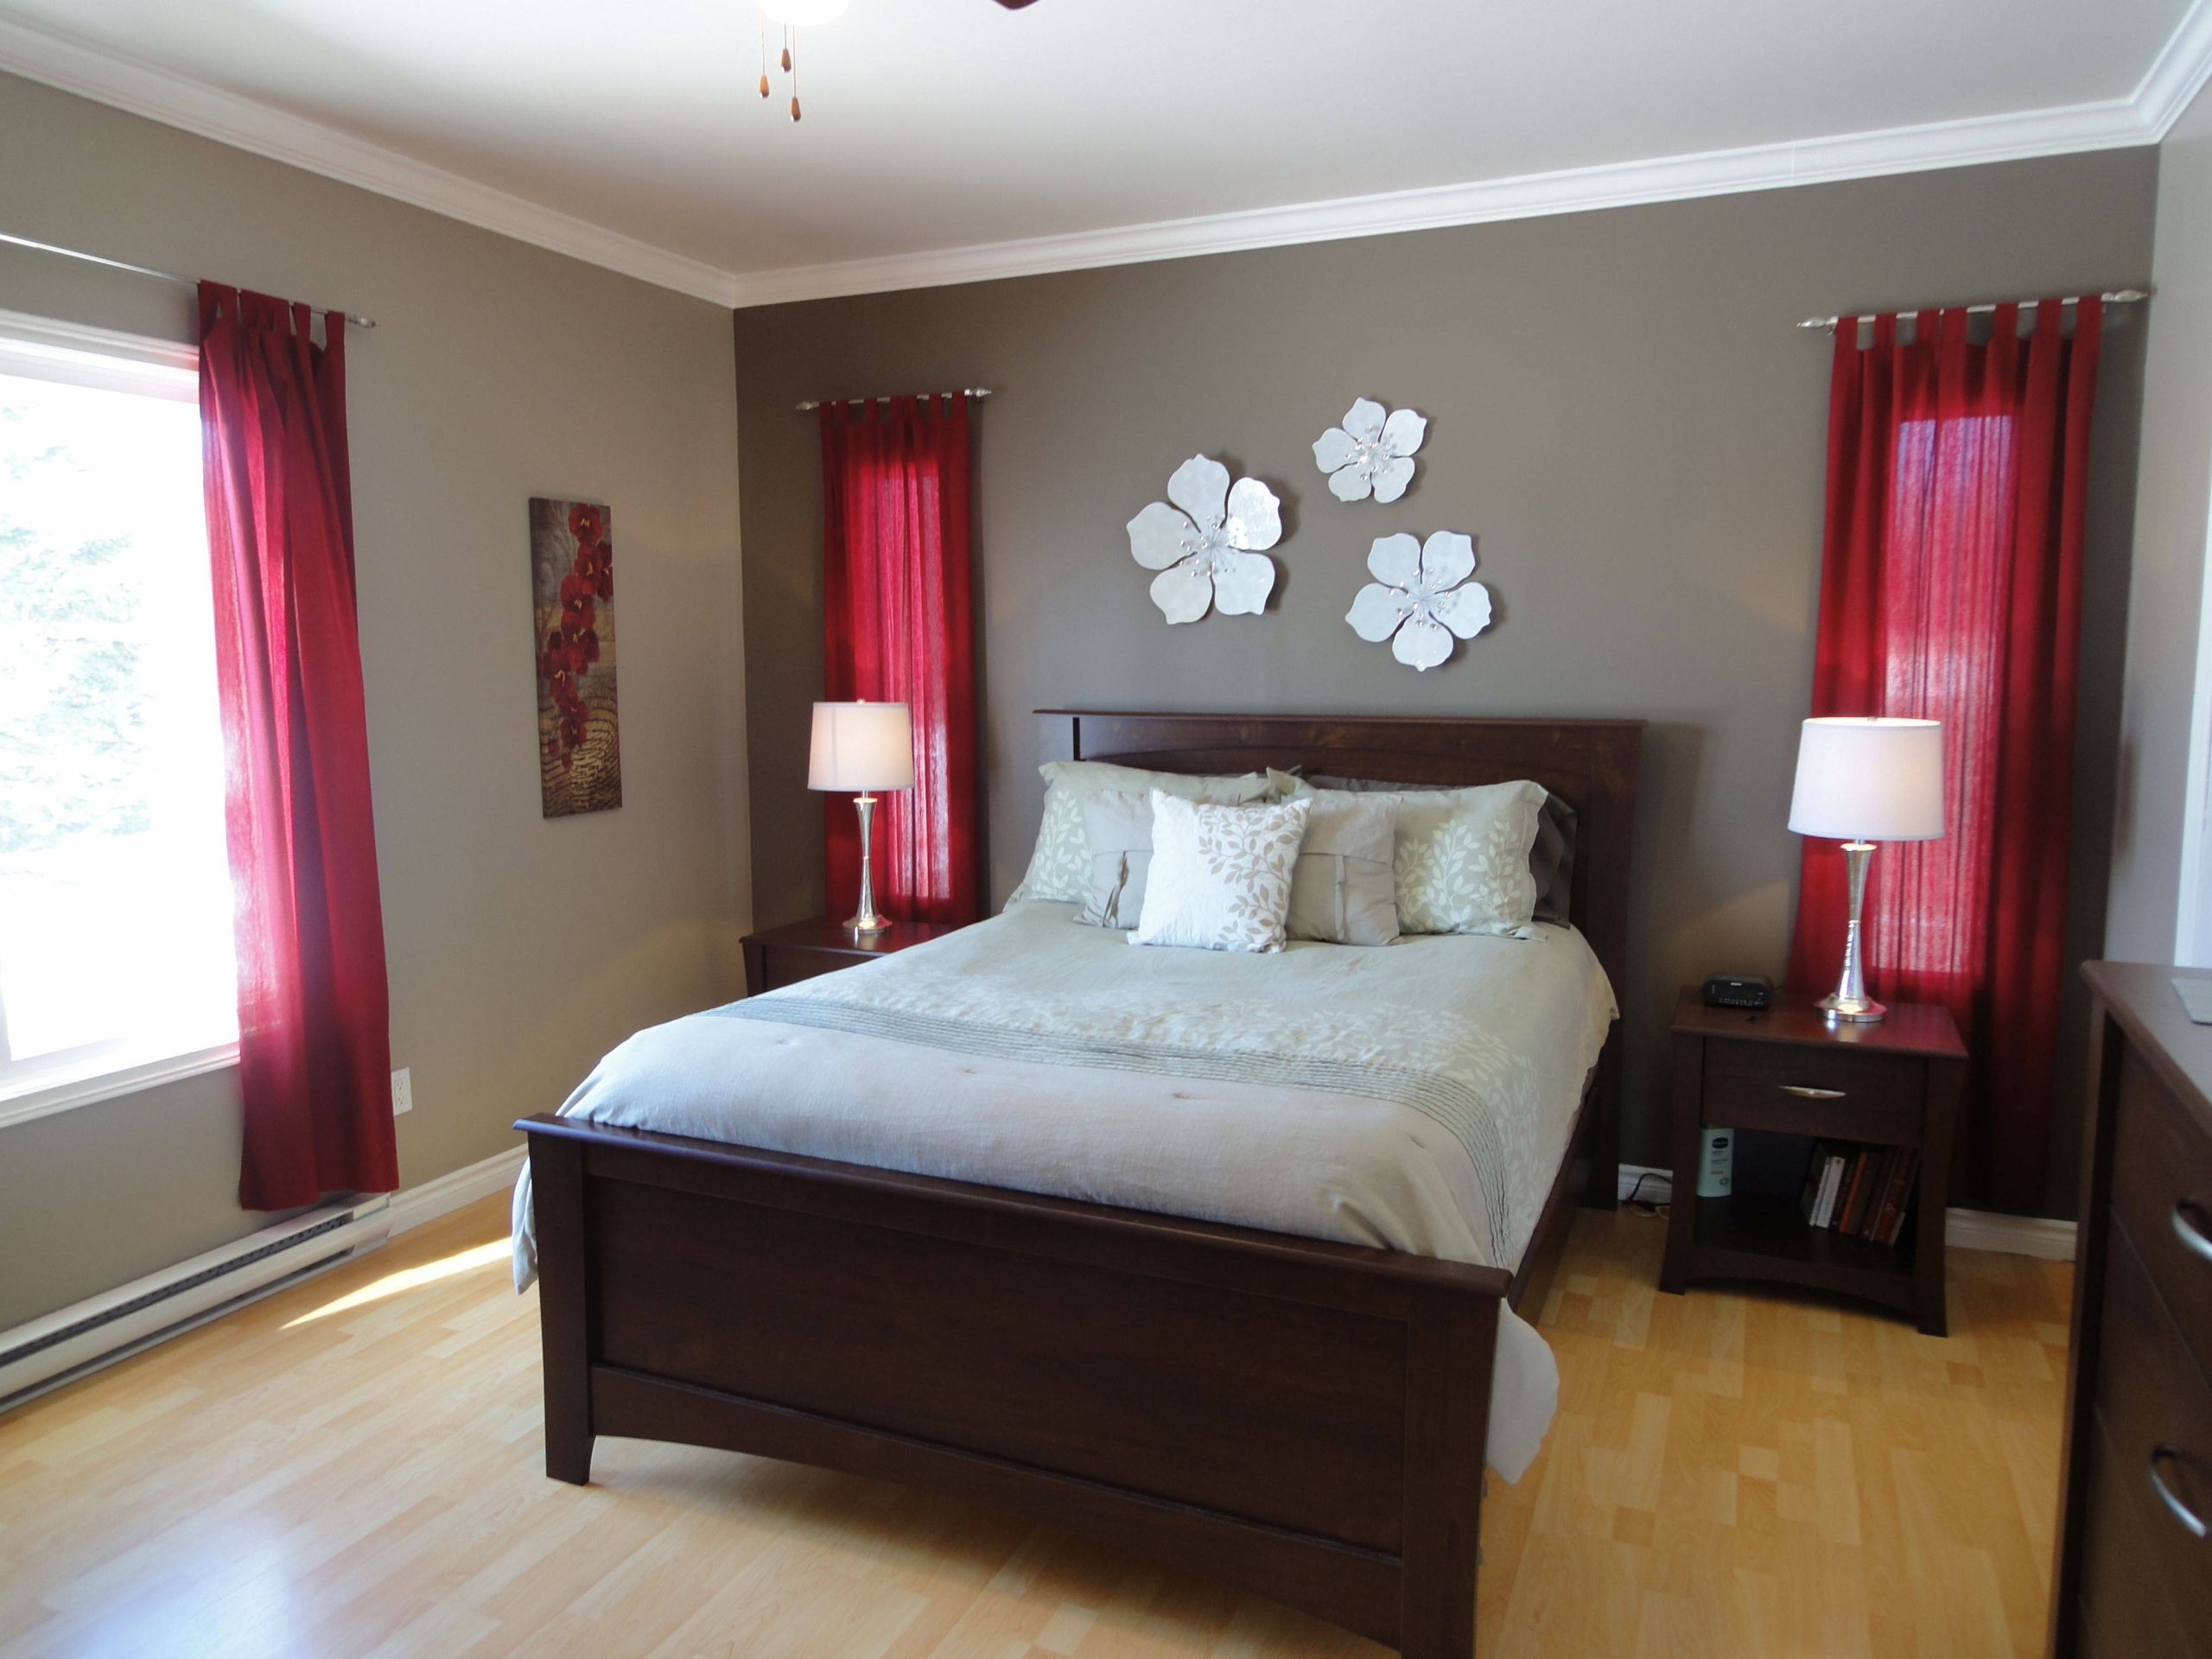 Red Bedrooms Walls Fresh I Just Decorated Our Guest Bedroom with Red Accents I Would